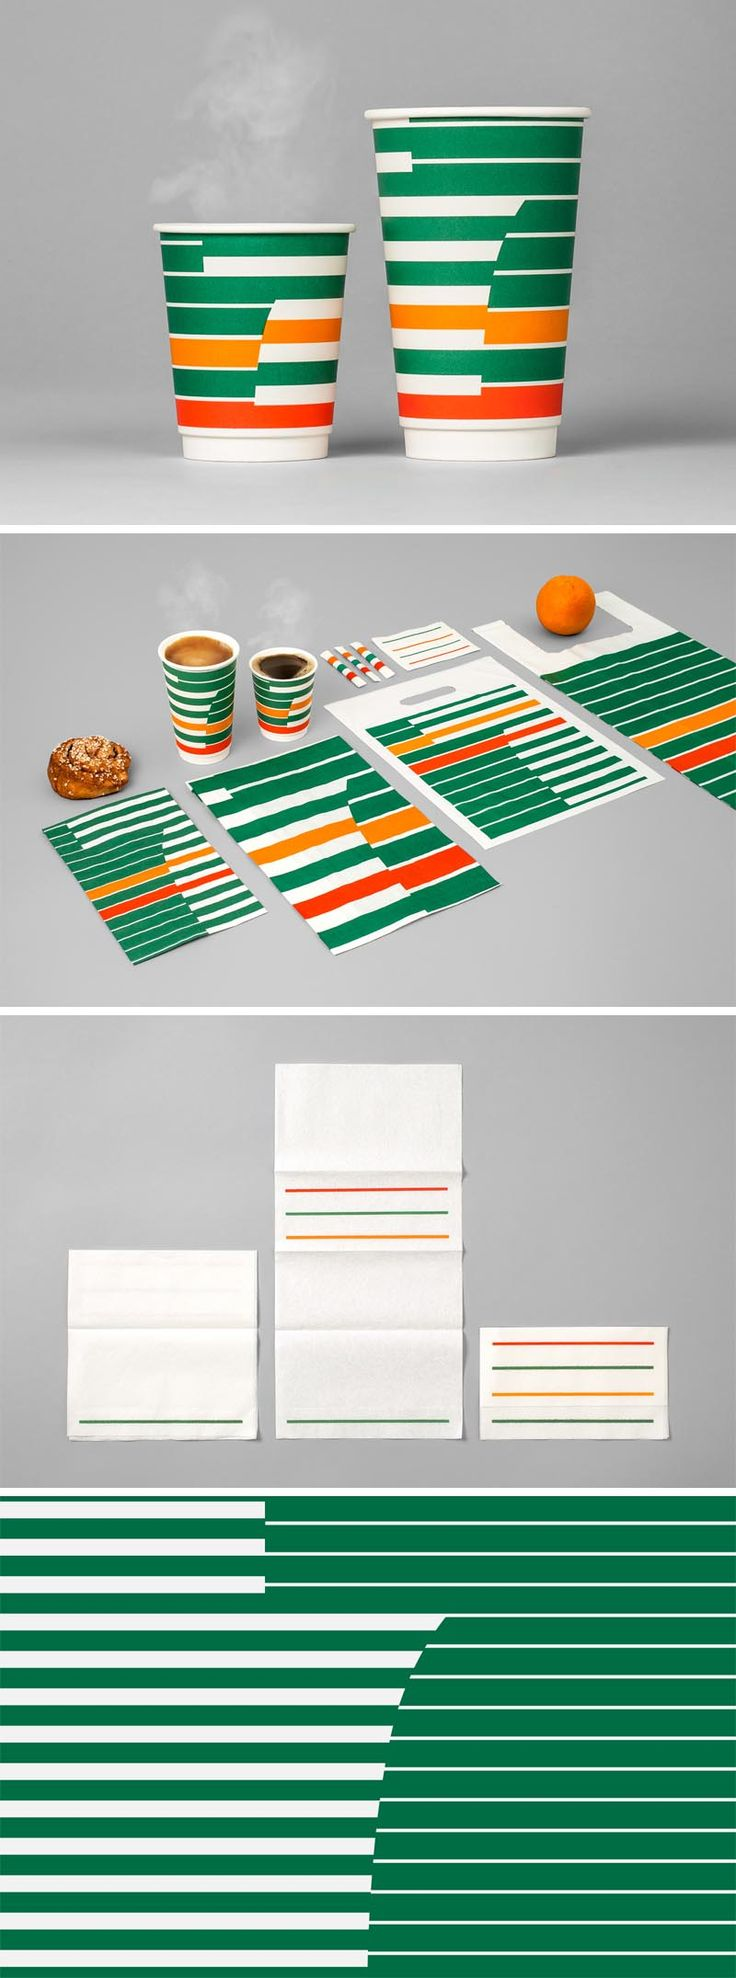 7-Eleven, 7Eleven, Rebrand of 7-eleven in Sweden by BVD, logos, corporate identity rebranding